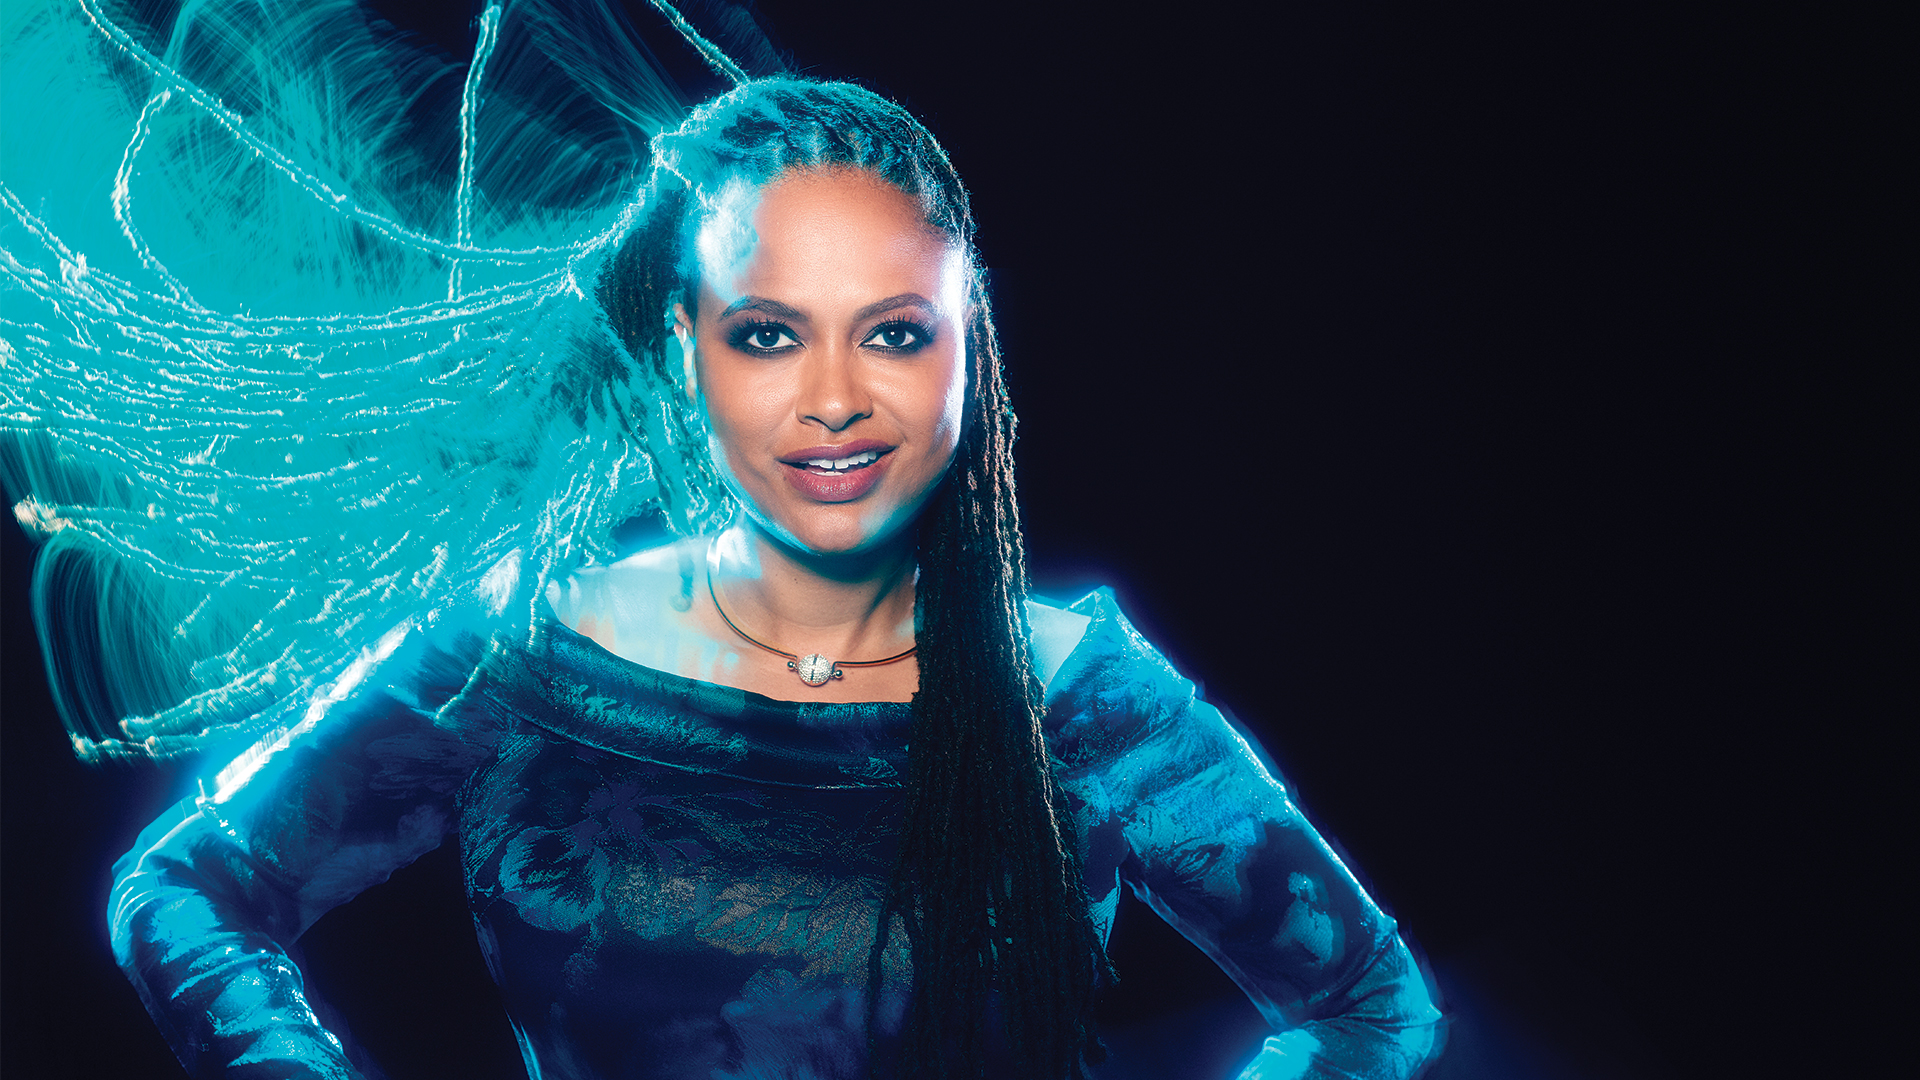 Ava DuVernay To Direct 'New Gods' For Warner Bros